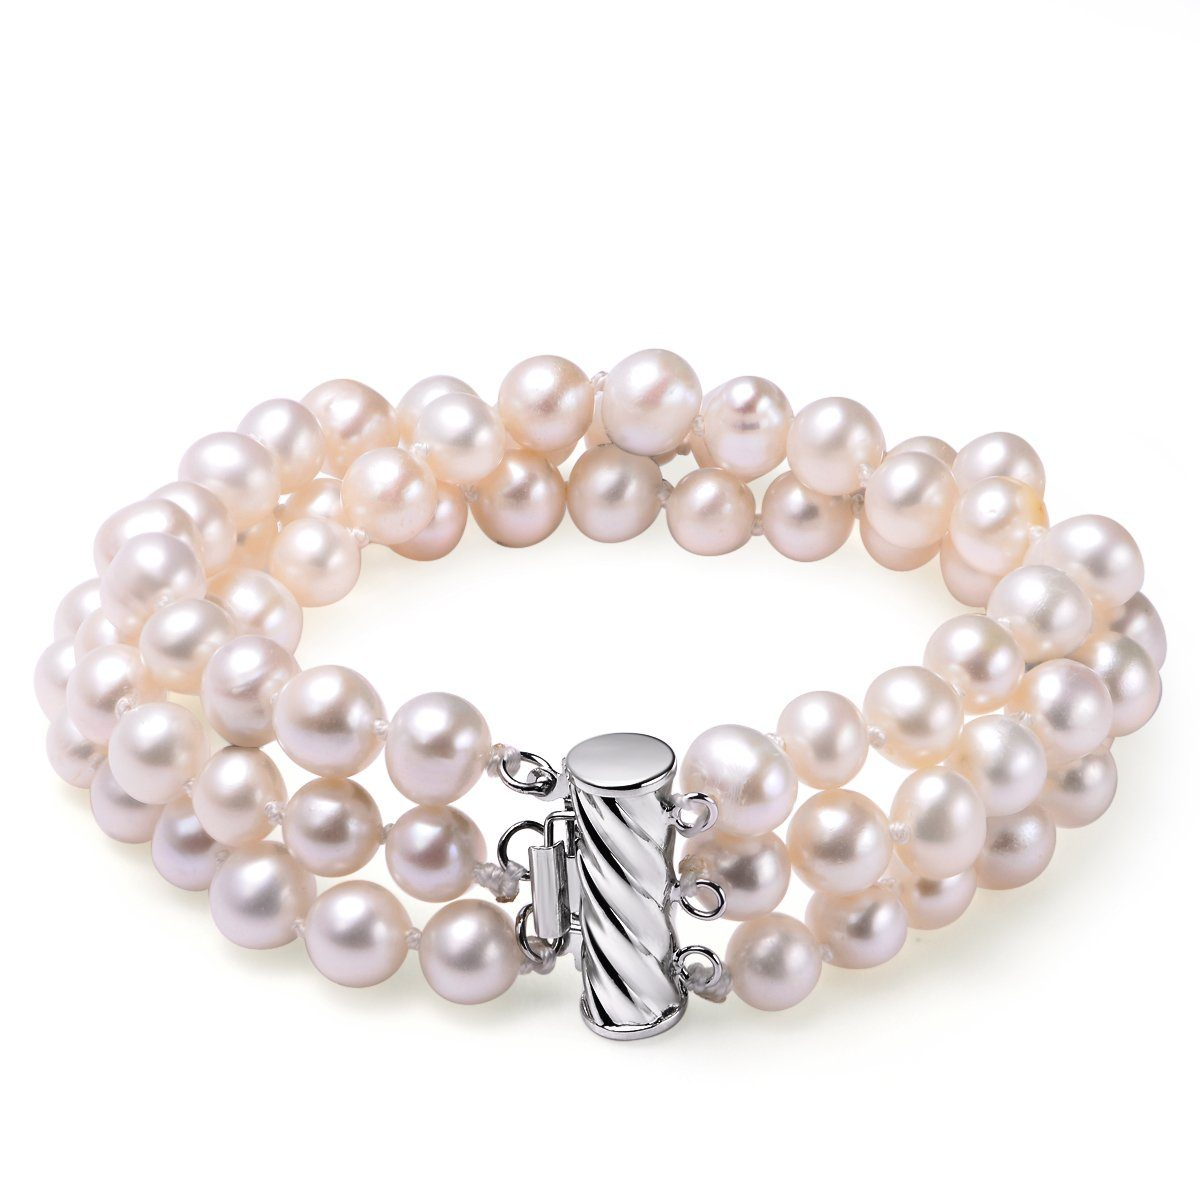 white 6-7mm bracelet triple row pearl 14k white gold filled bar clasp